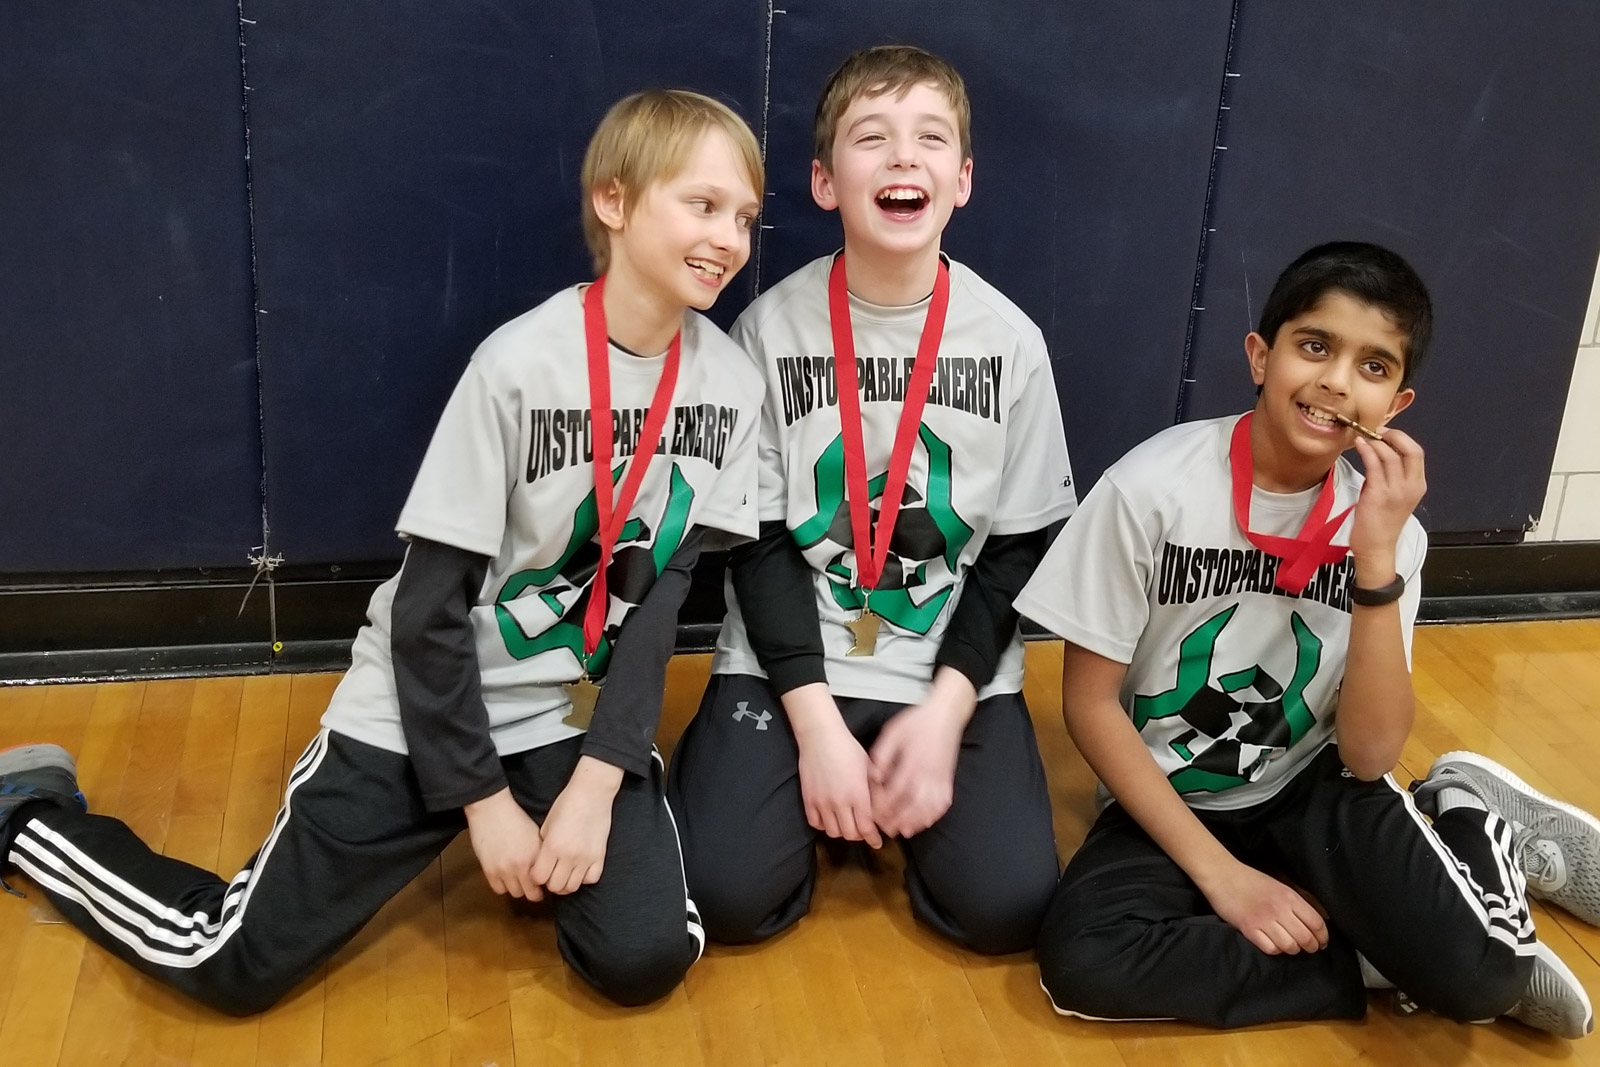 2018 Lego Robotics Competition - Team Unstoppable Energy-2